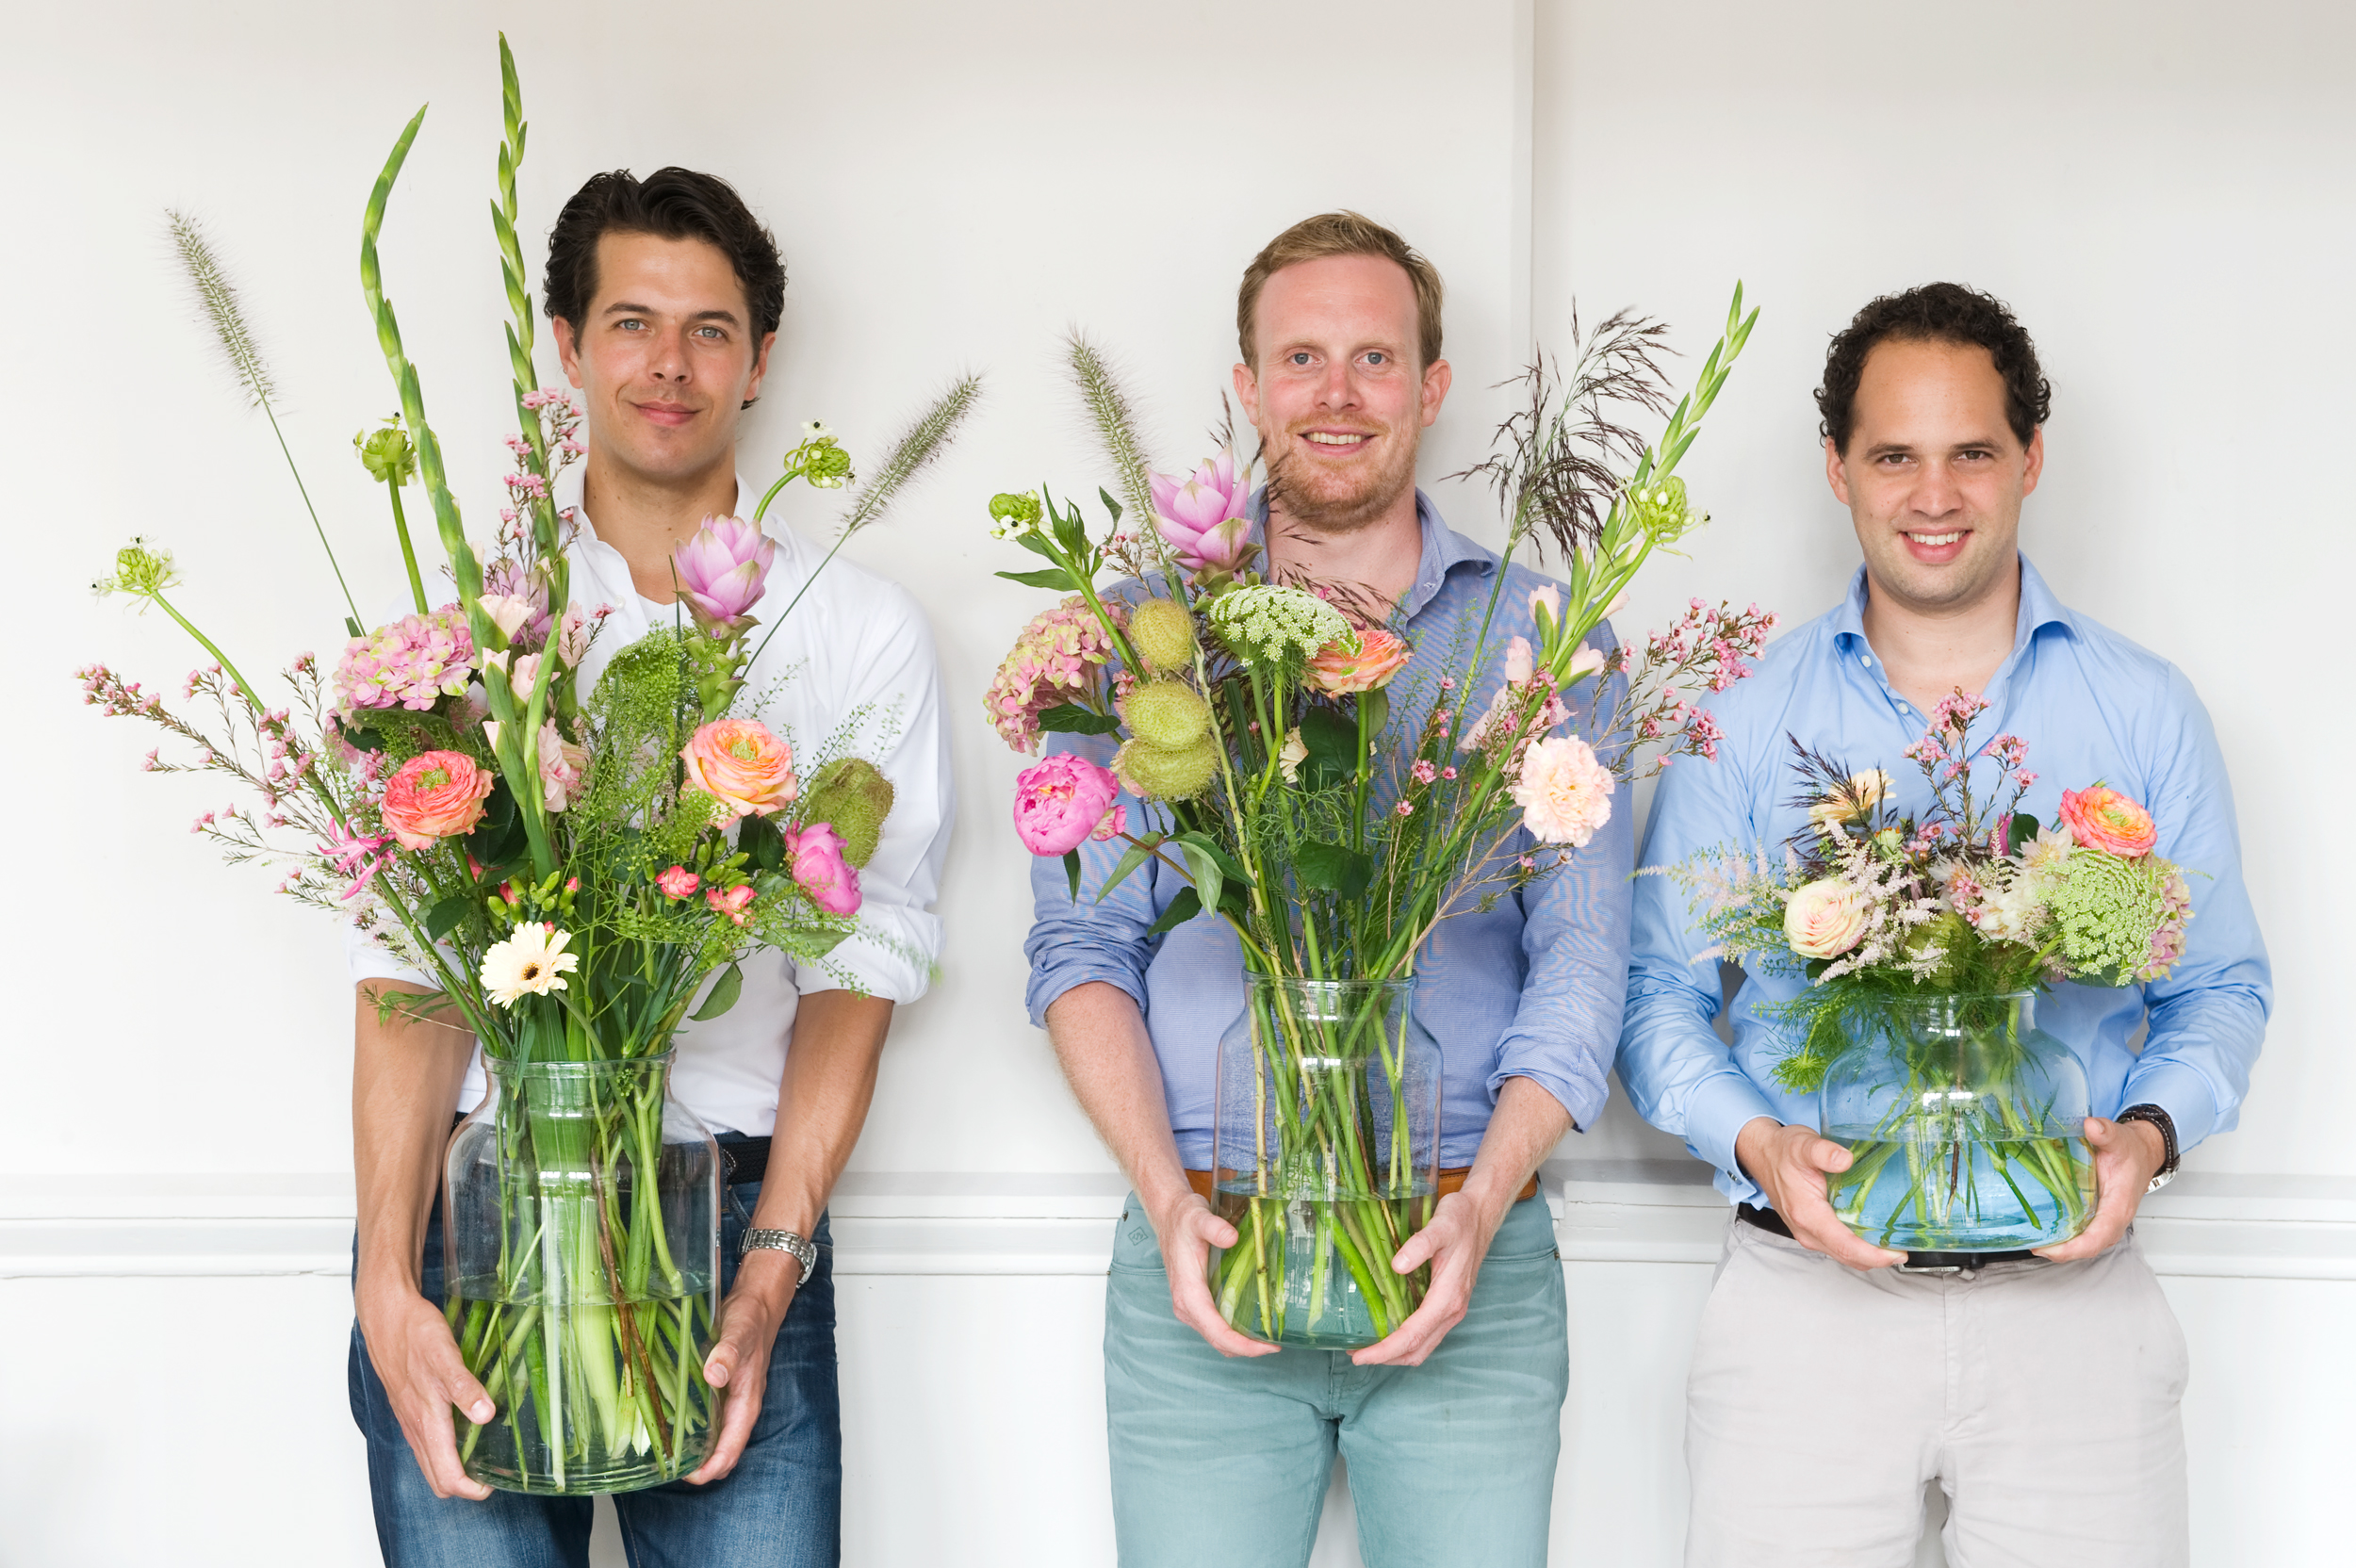 Flower startup Bloomon wins Startup Deal of the Year